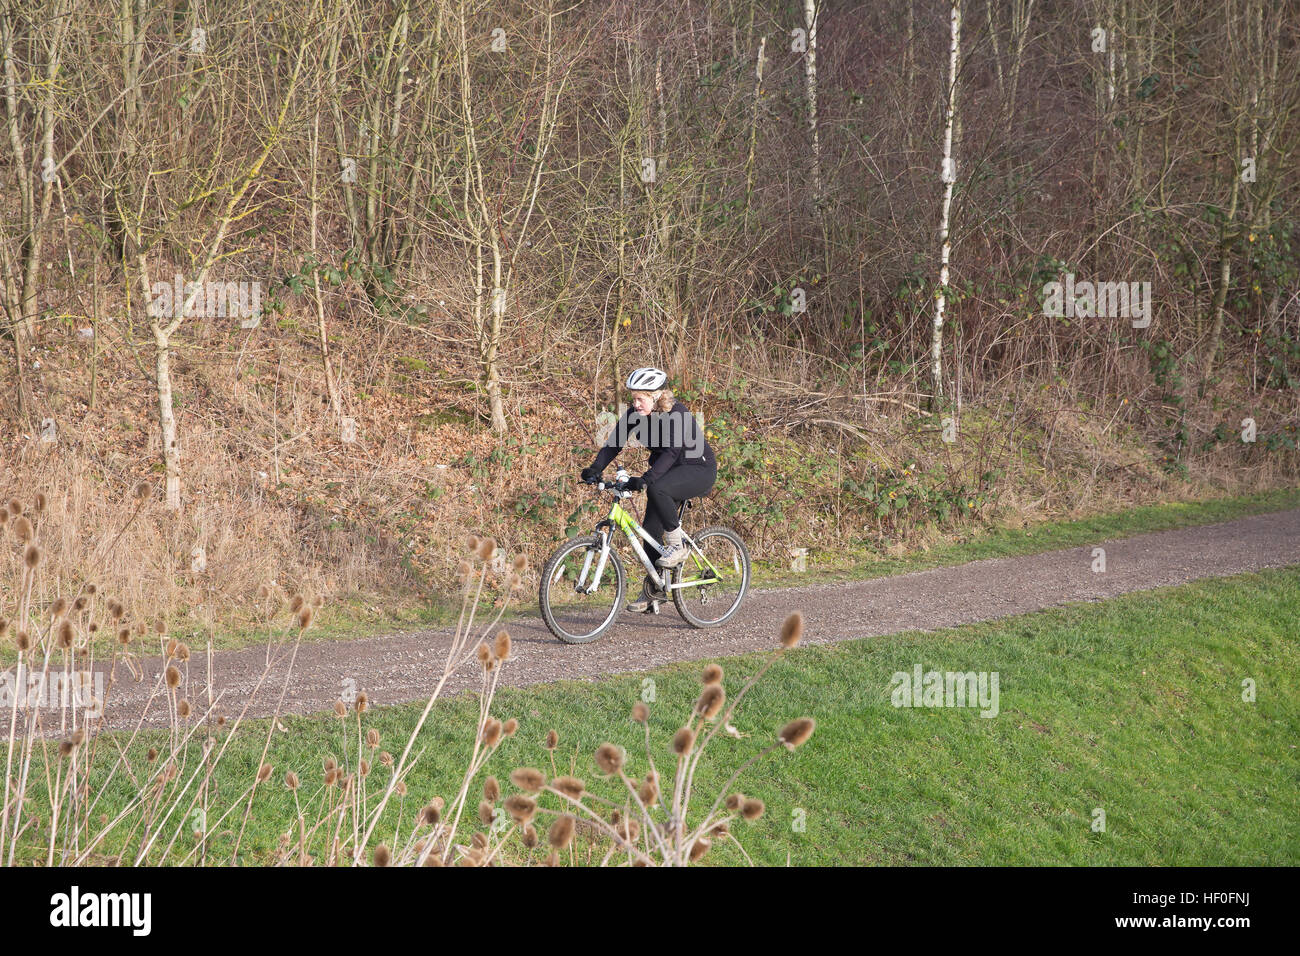 Chesterfield, UK, 27th December 2016, Joggers, cyclists and walkers along Chesterfield canal. Credit: Keith Larby/Alamy - Stock Image